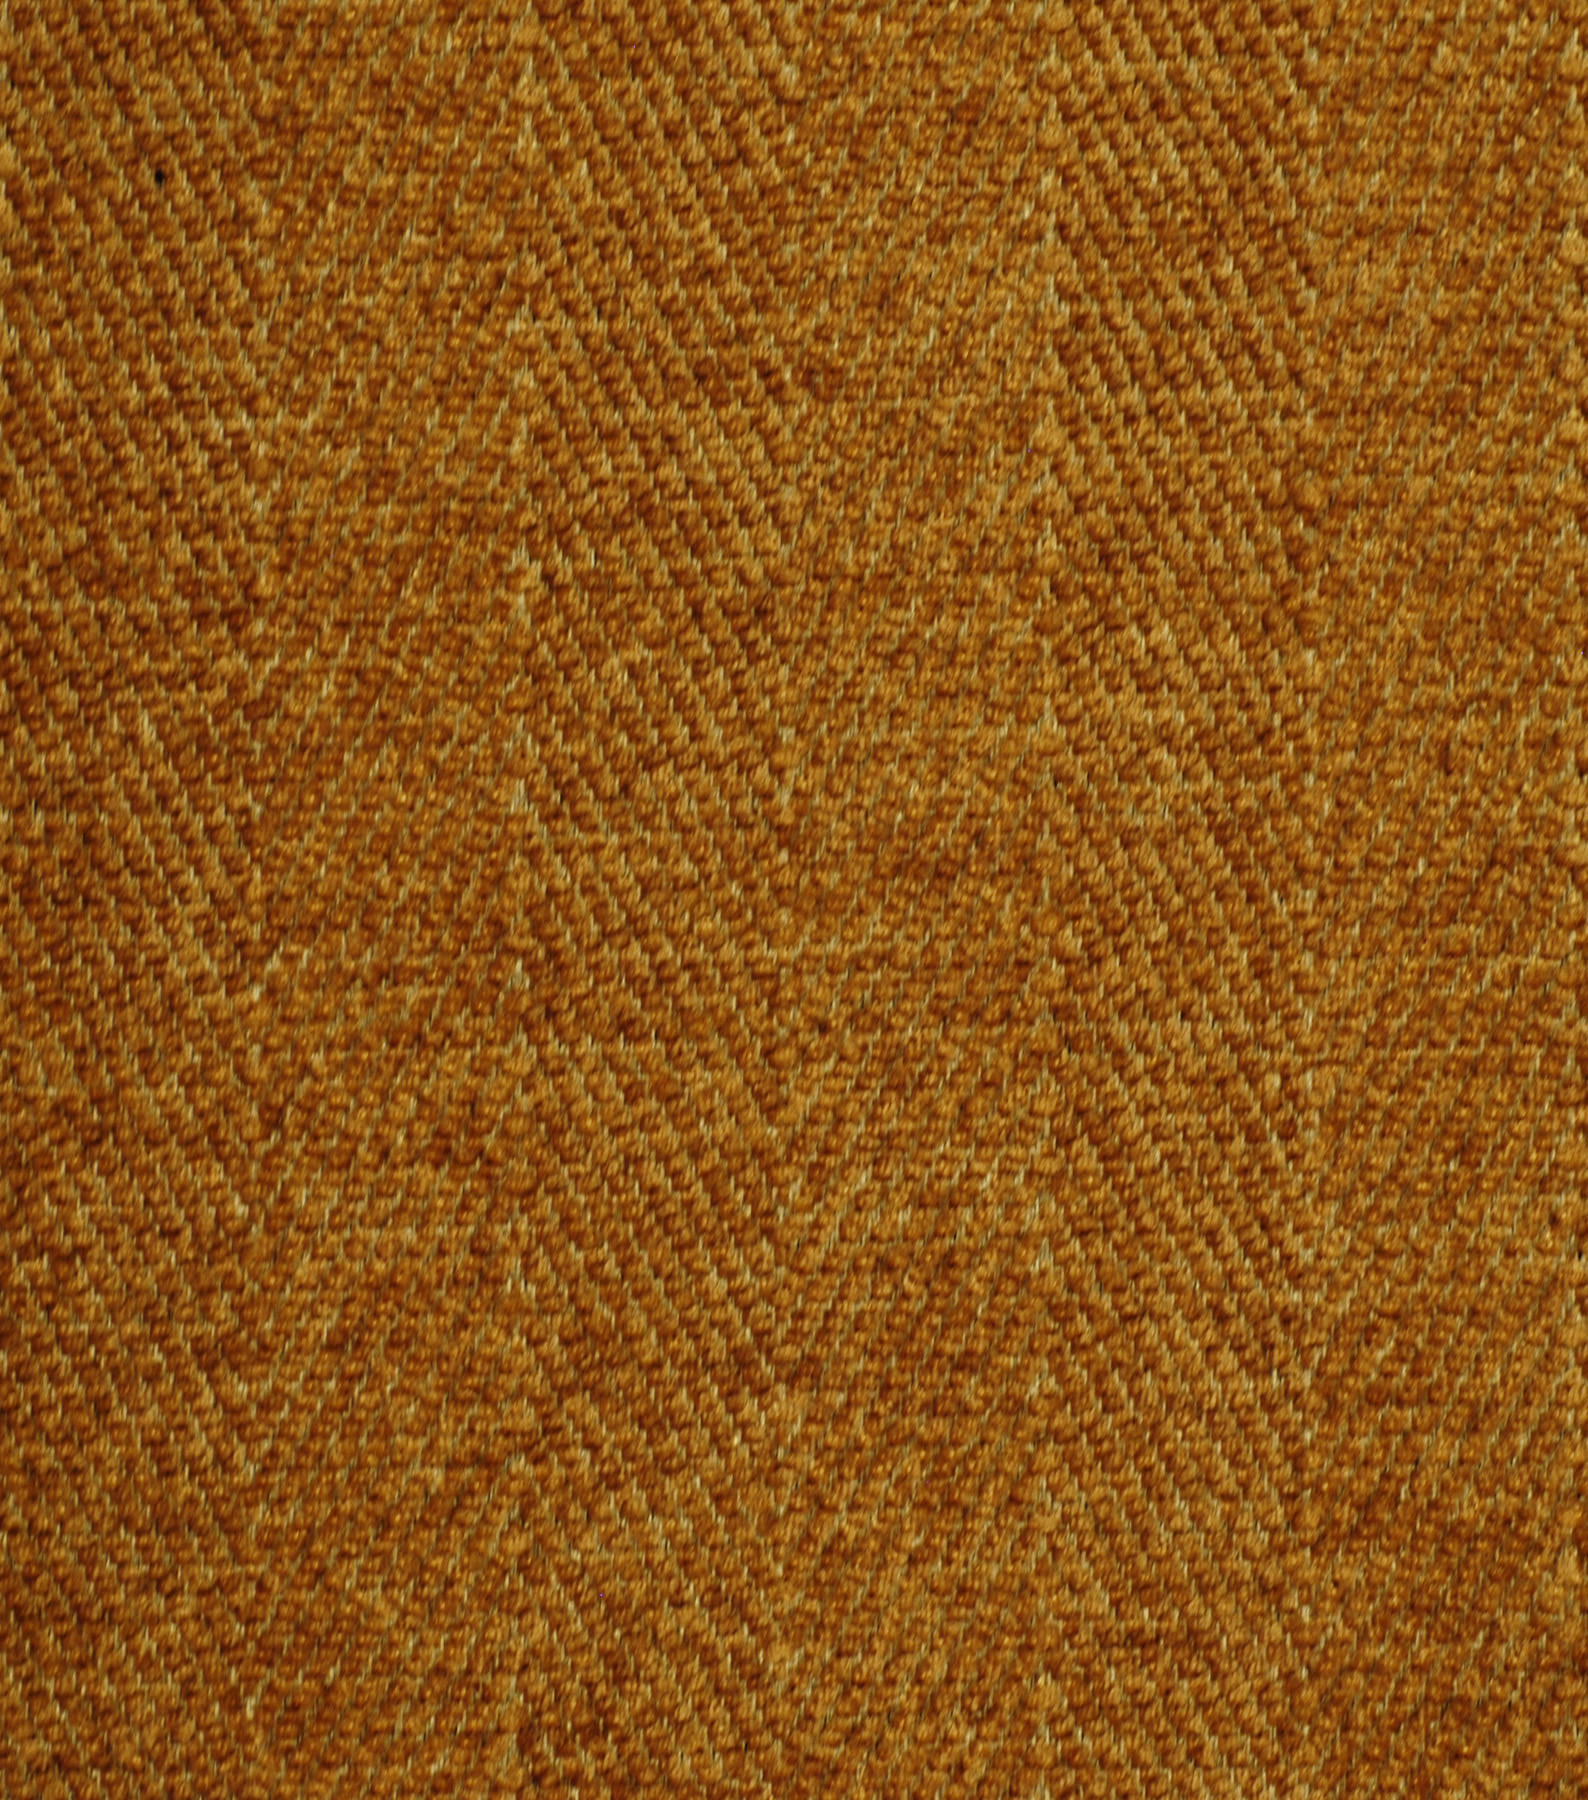 Home Decor 8\u0022x8\u0022 Fabric Swatch-Signature Series Sweater Antique Gold